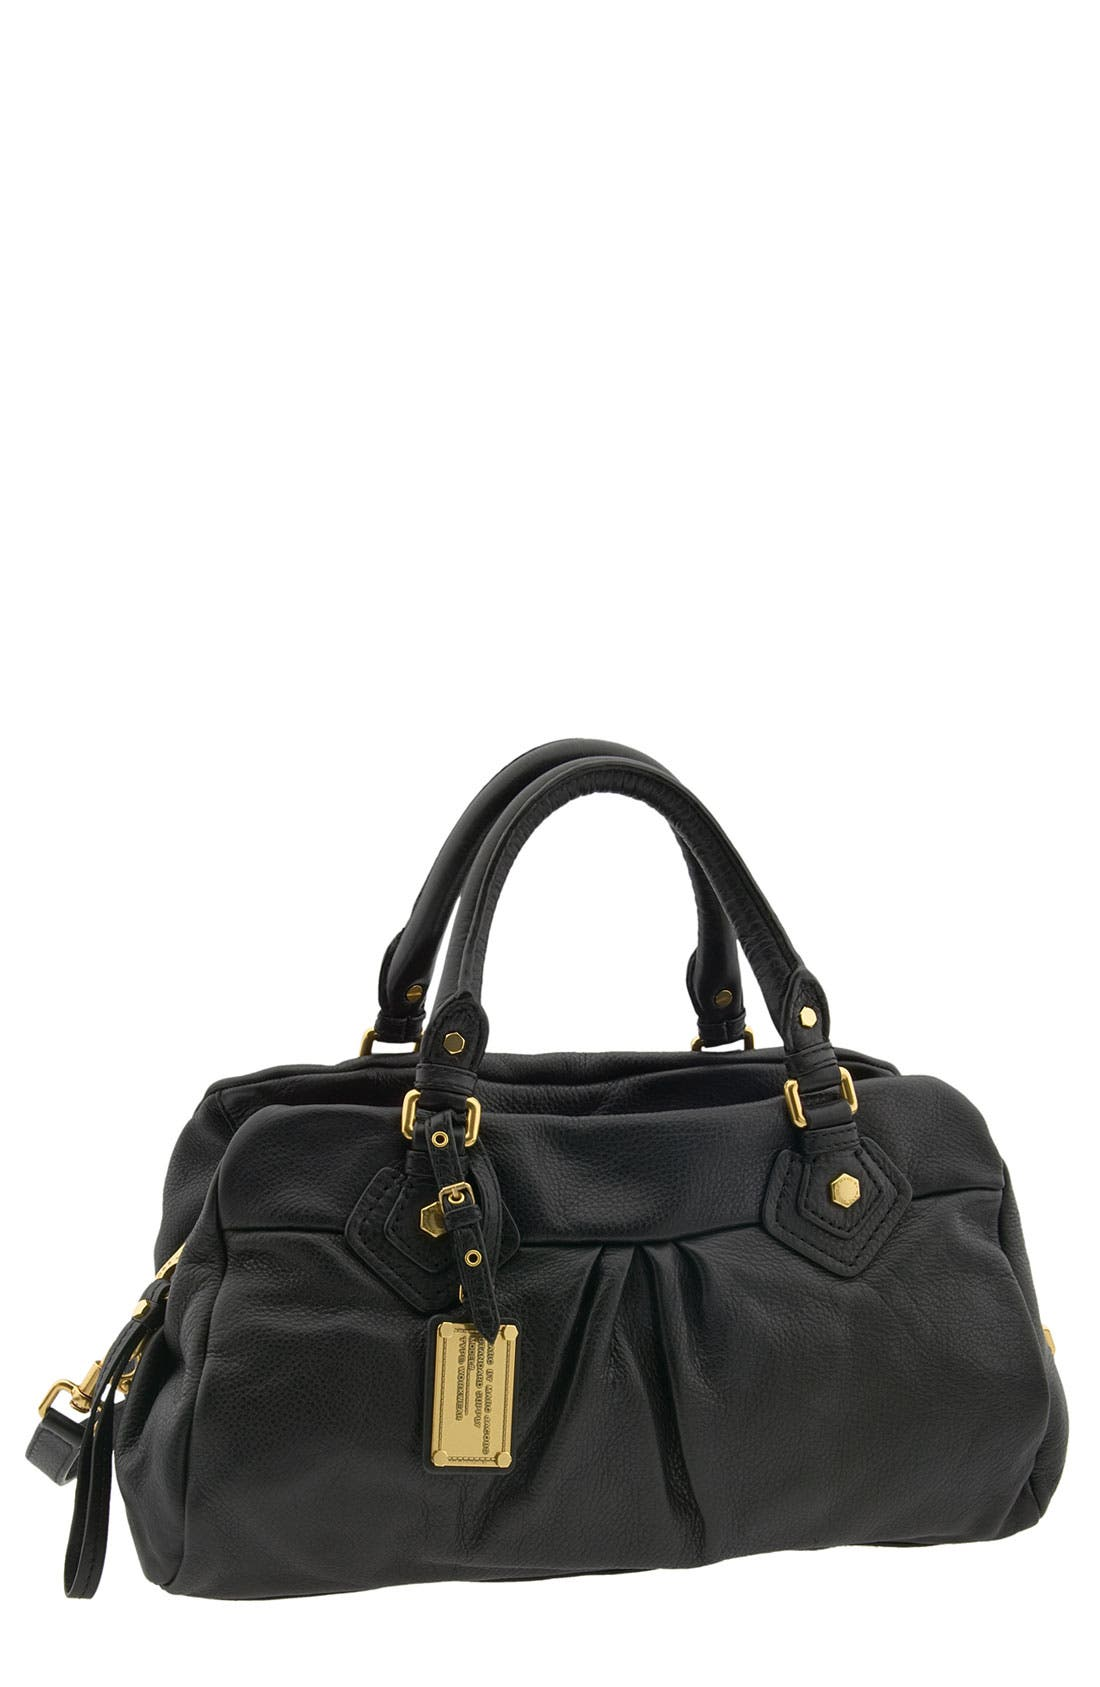 MARC BY MARC JACOBS 'Classic Q - Groovee' Satchel,                         Main,                         color, 001